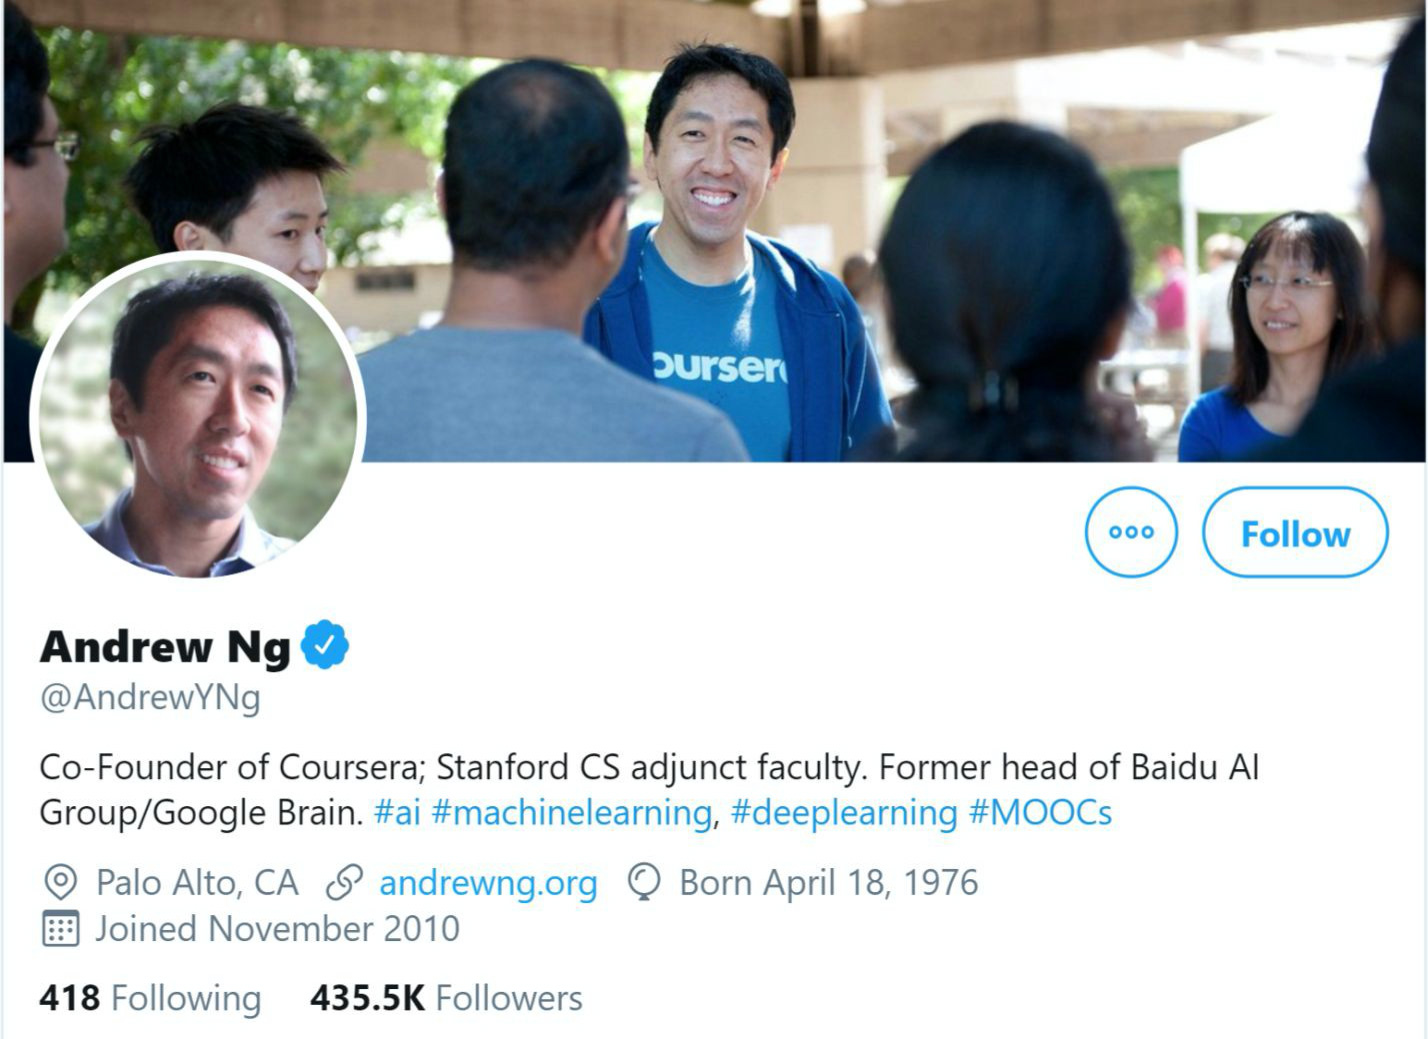 andrew ng twitter influencer